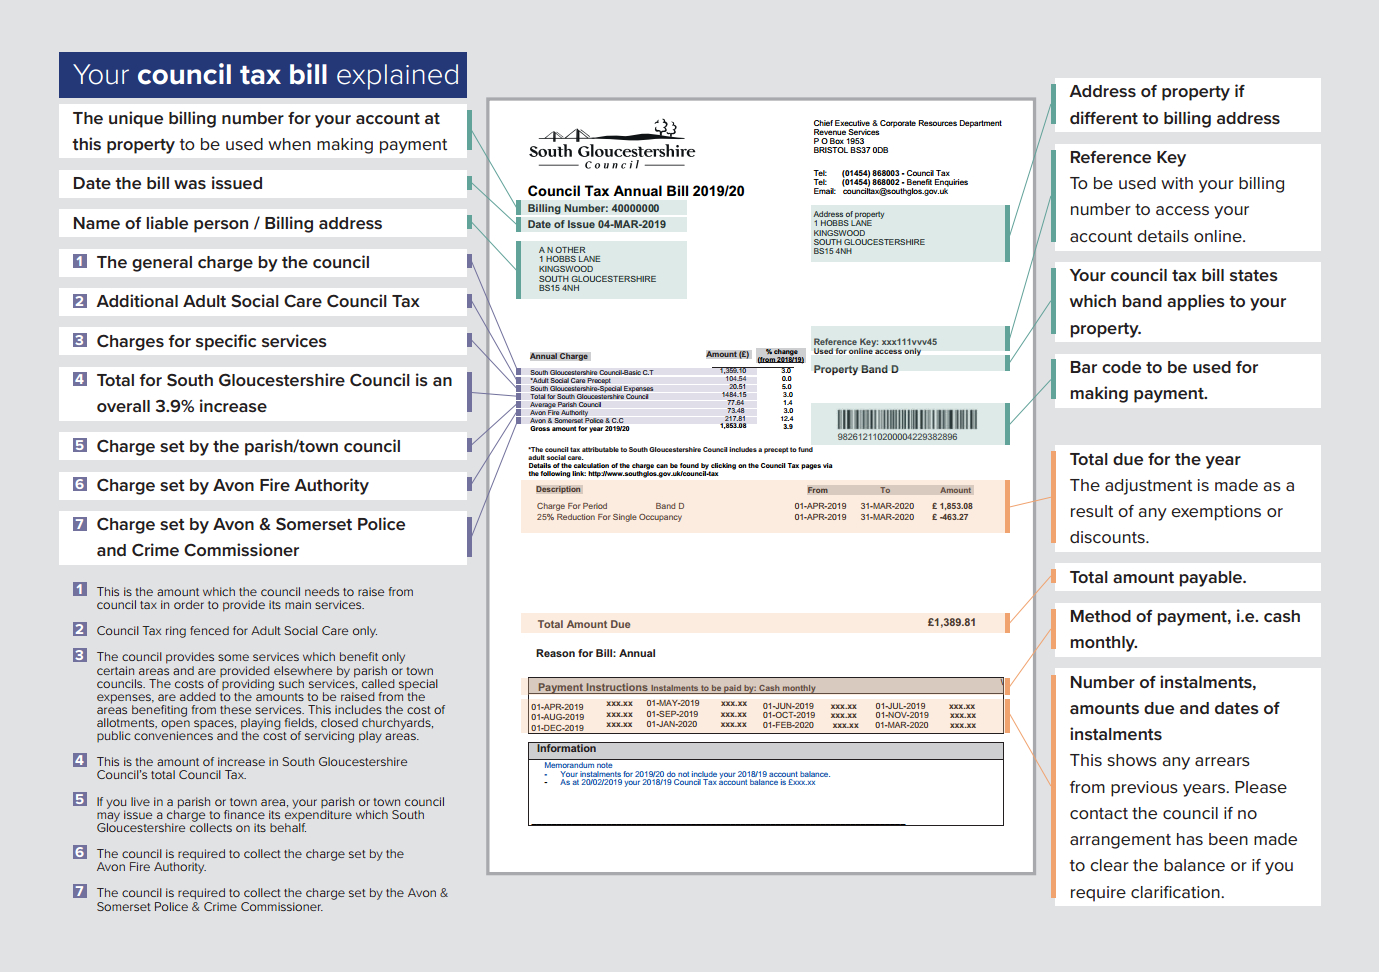 Your council tax bill explained - annotated council tax explaining each section of the bill